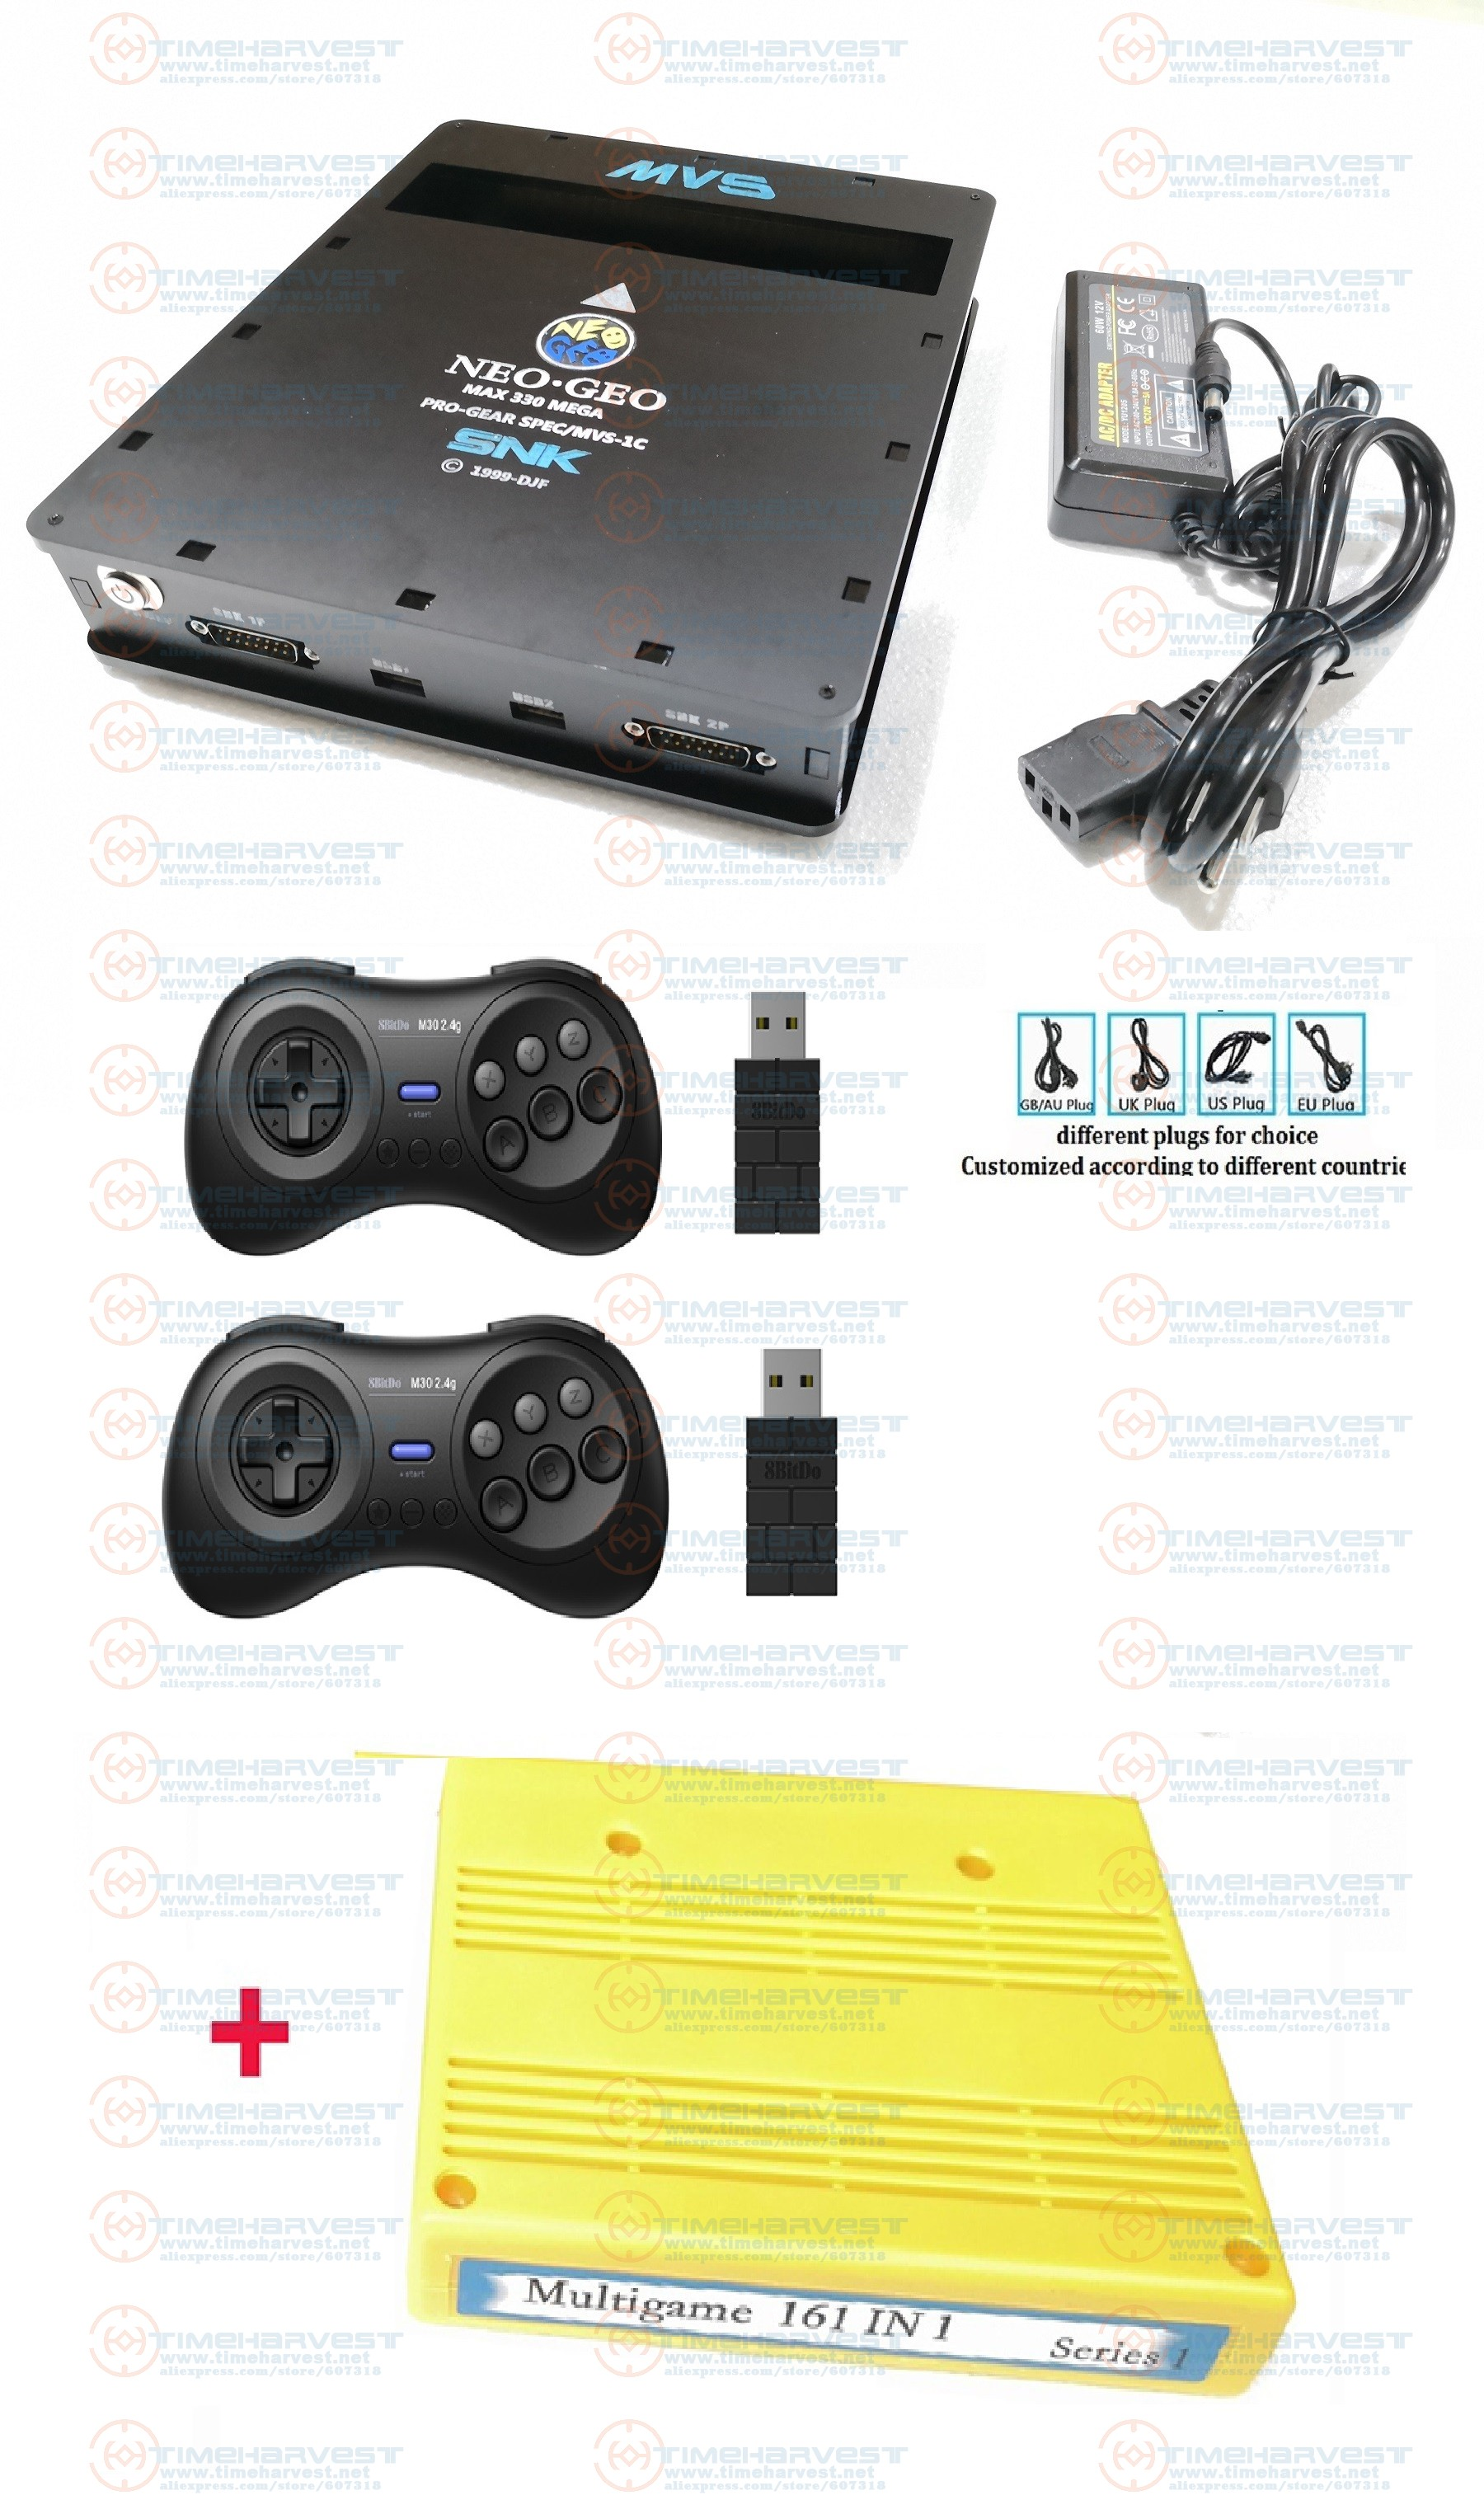 <font><b>CBOX</b></font> <font><b>MVS</b></font> console SNK NEOGEO CMVS with 2pcs 8BitDo 2.4G USBWireless joypad & 161 in 1 game cartridge Arcade Family Party TV games image